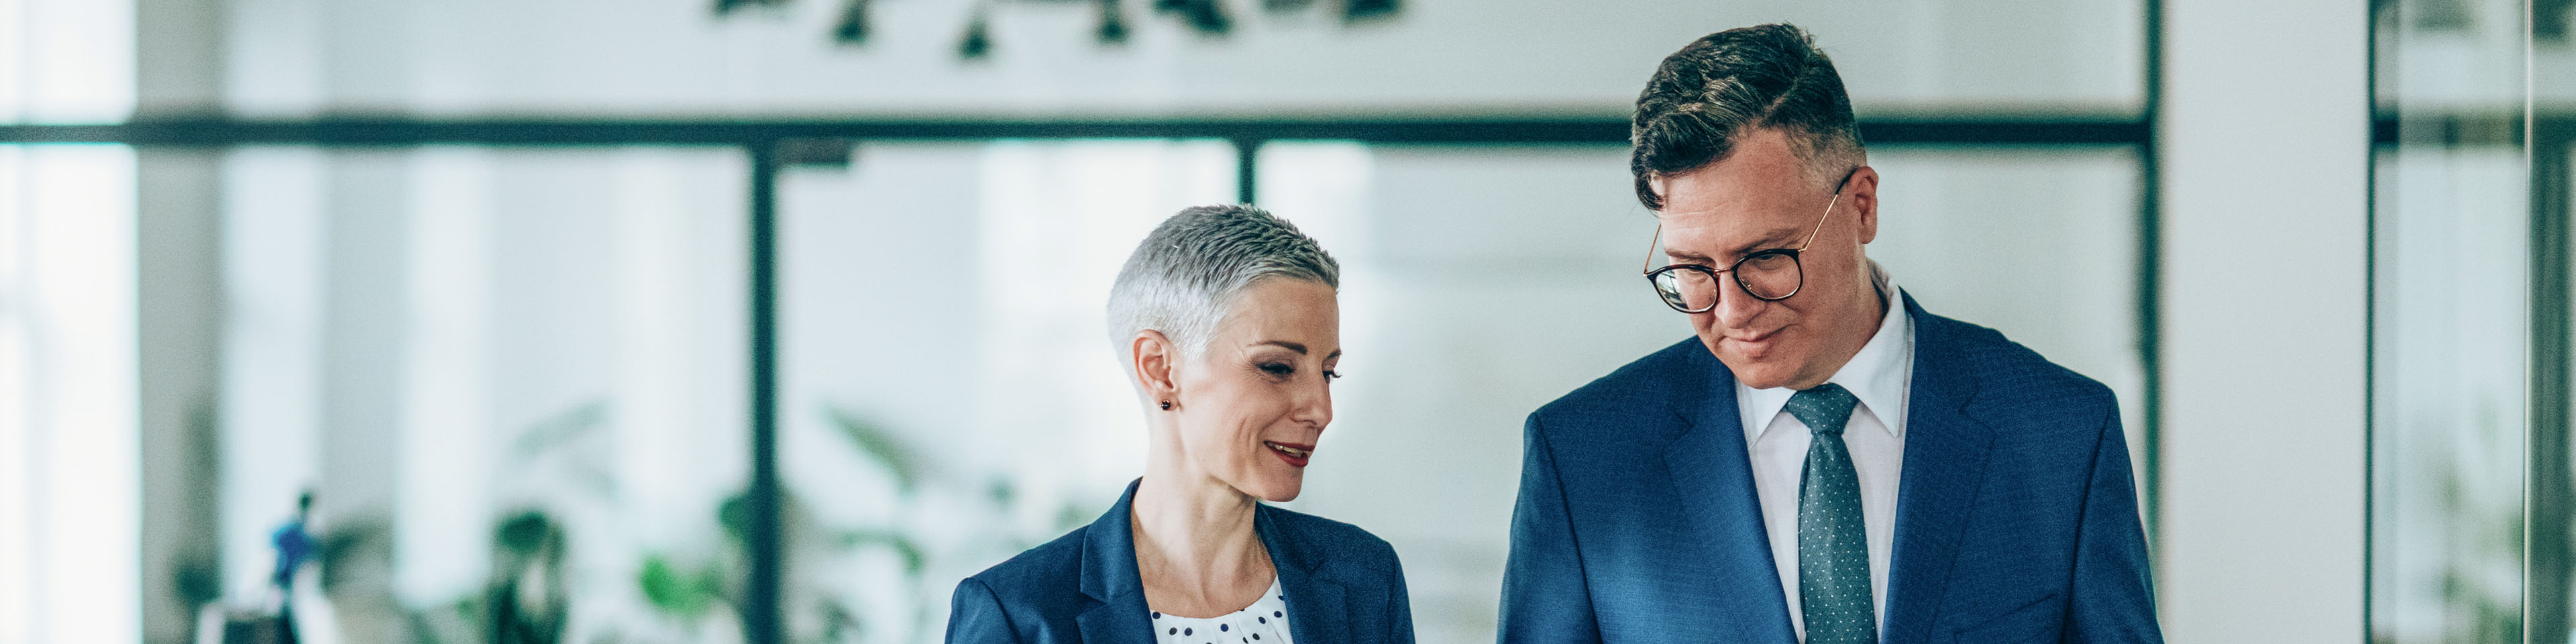 Shot of a businesswoman and businessman talking in the work place